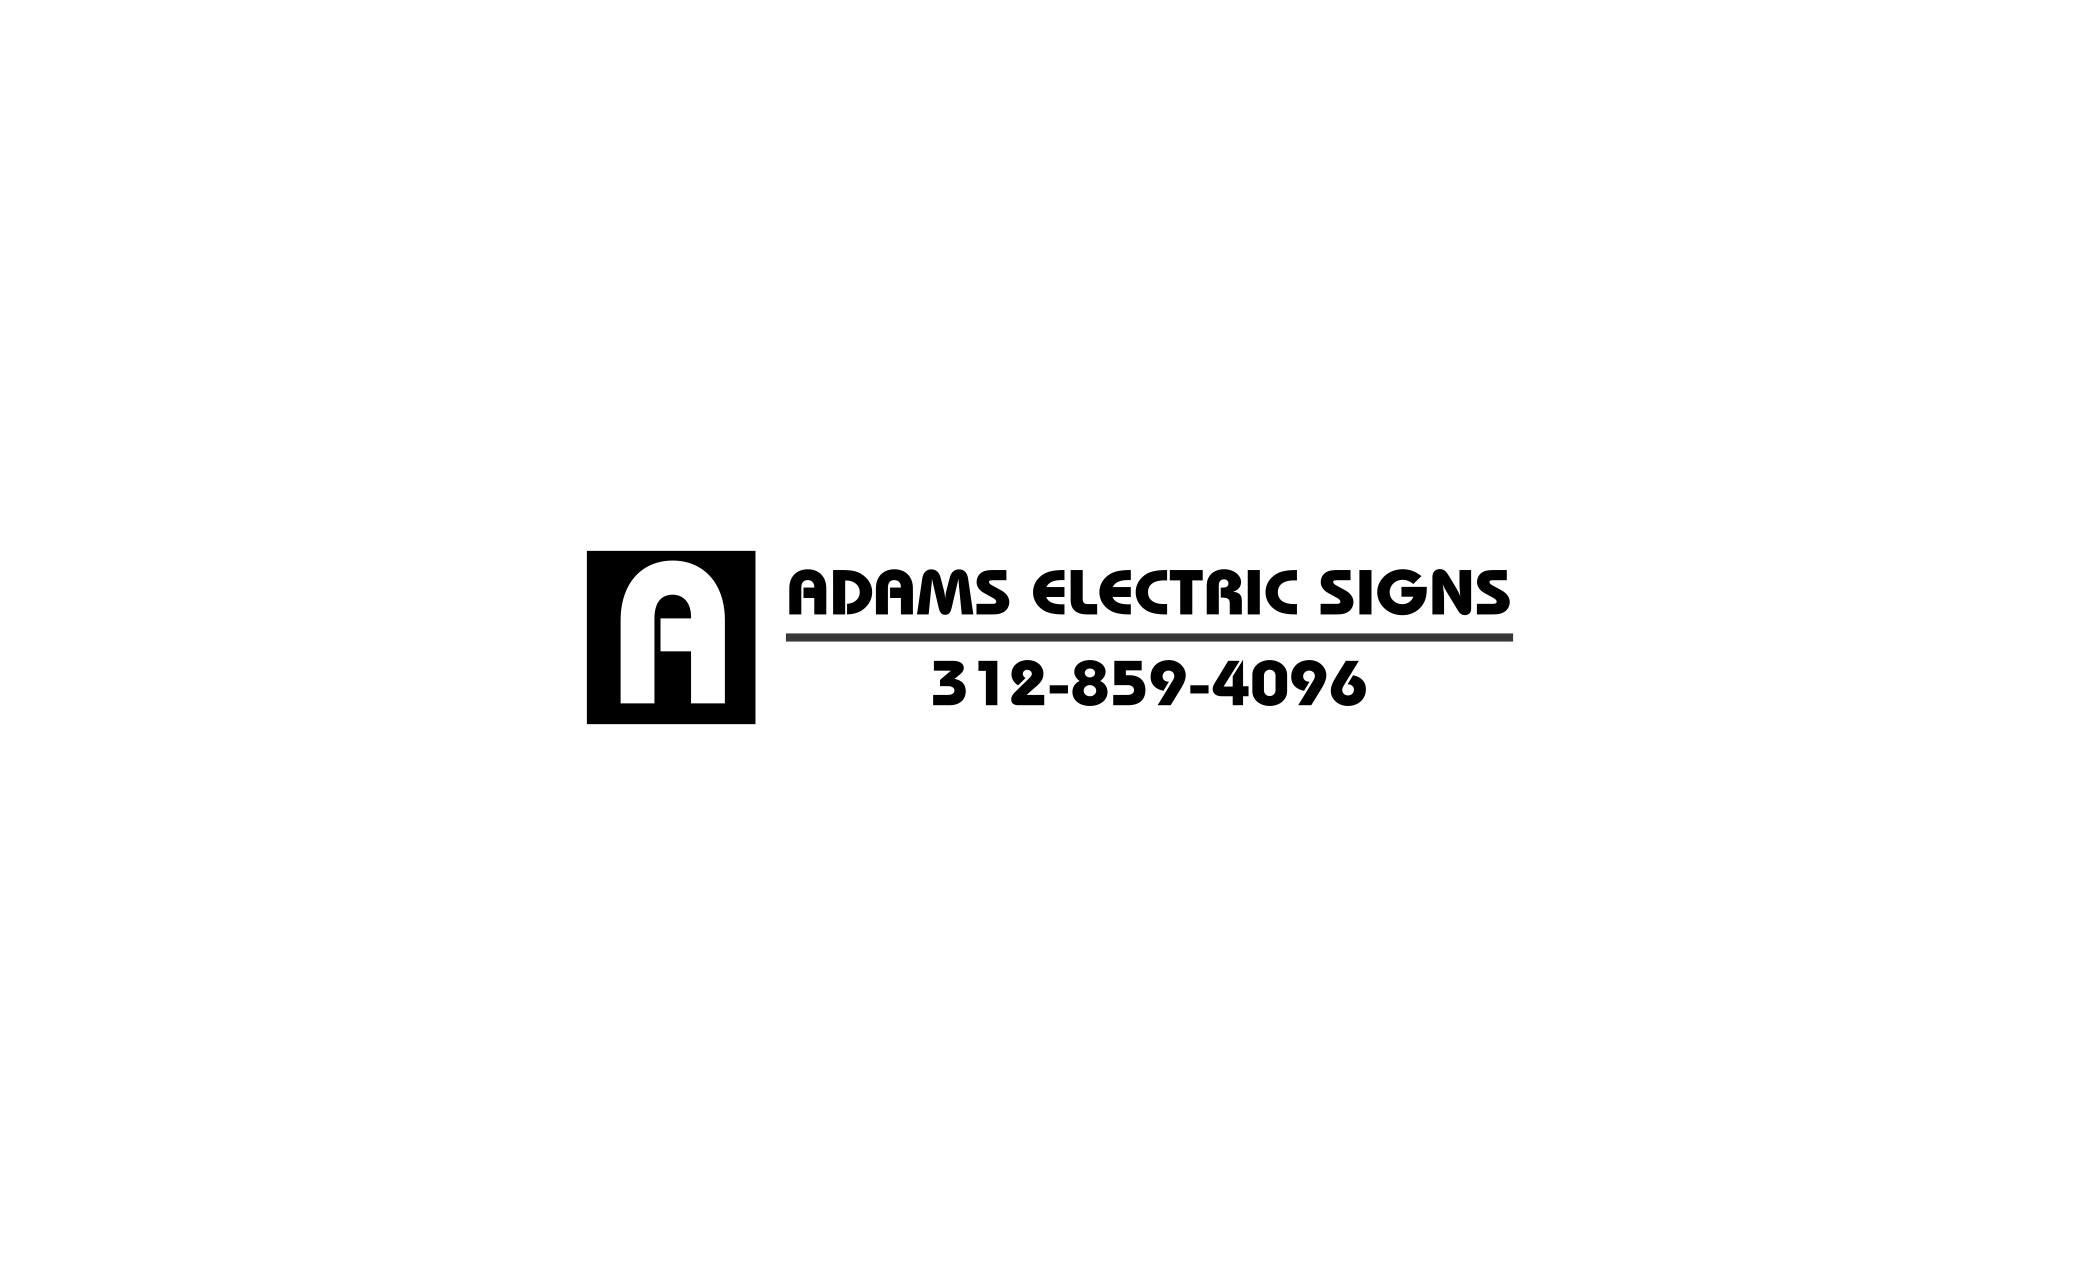 Adams Electric Signs